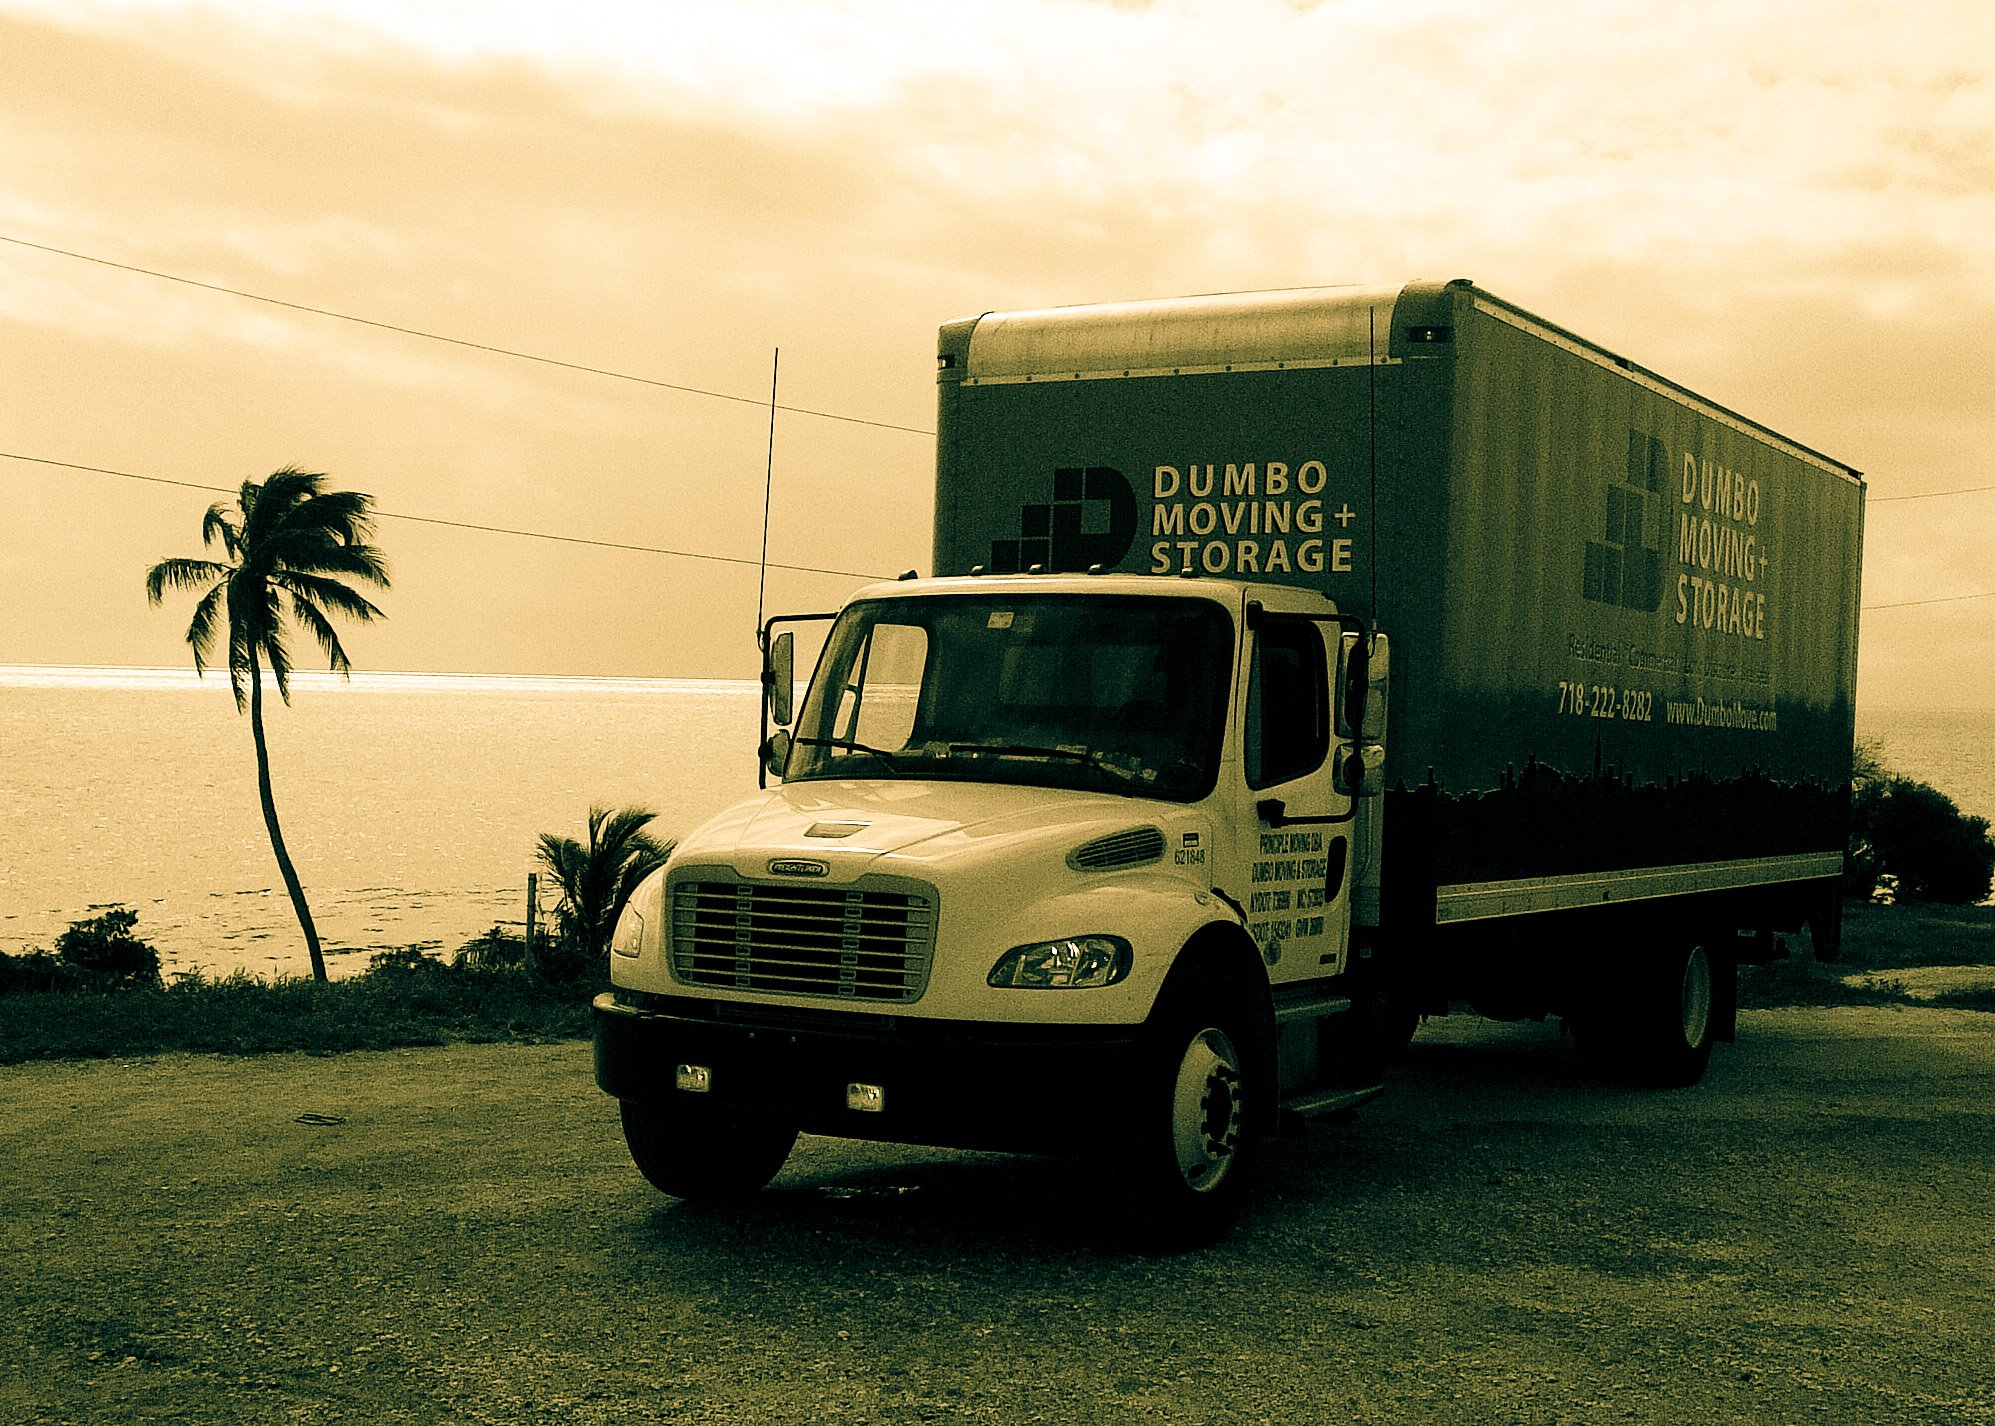 Dumbo Moving Truck Ready for Your Moving to South Carolina